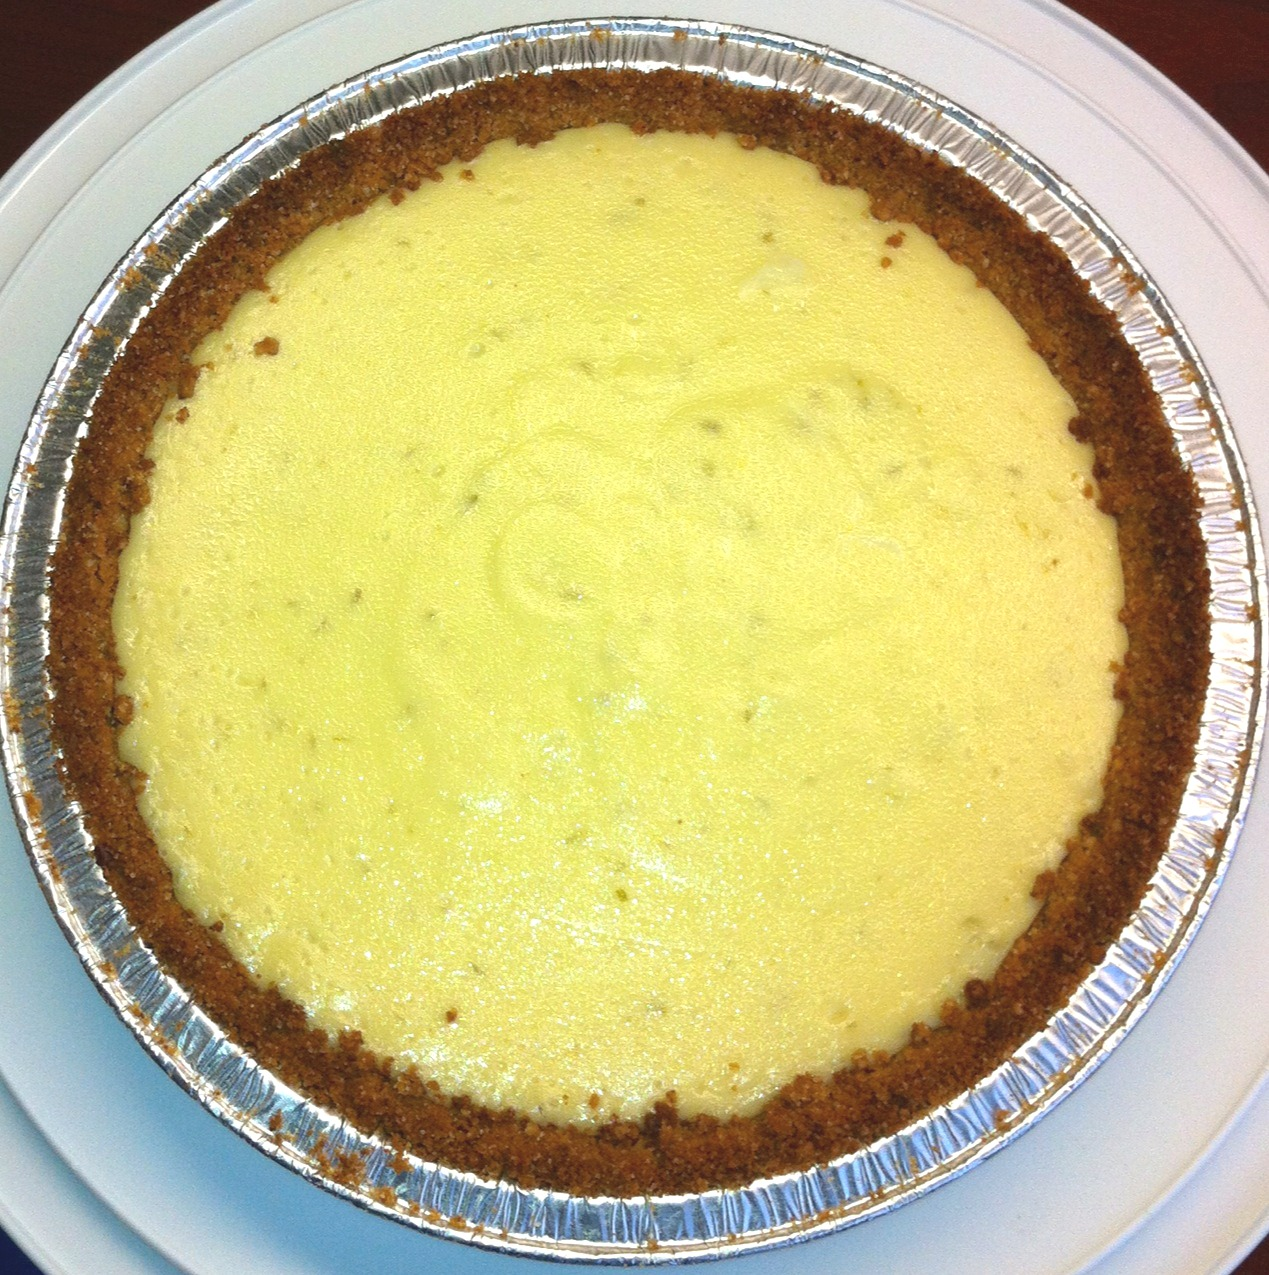 ... Bread In Texas : Key Lime Pie with Coconut-Pecan Graham Cracker Crust